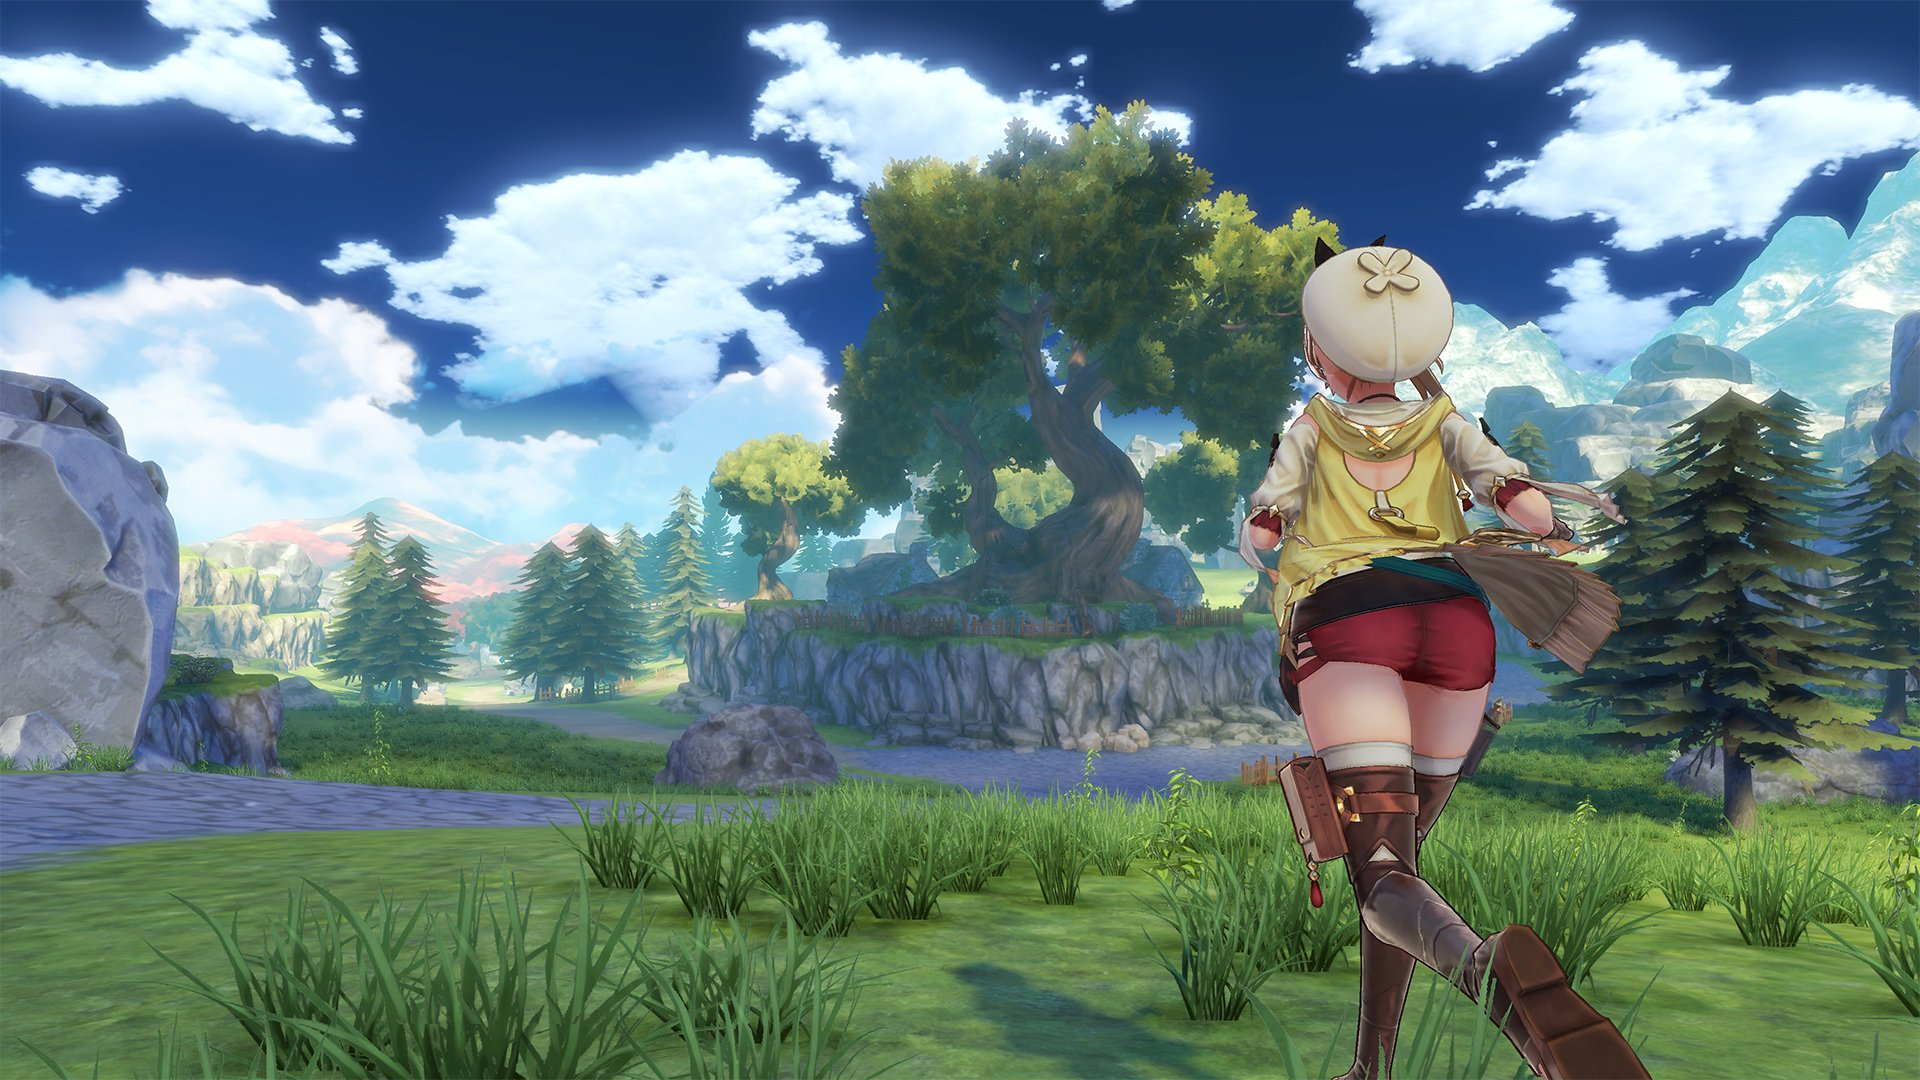 Heading Atelier Ryza: Ever Darkness & the Secret Hideoutoff on a coming of age adventure in